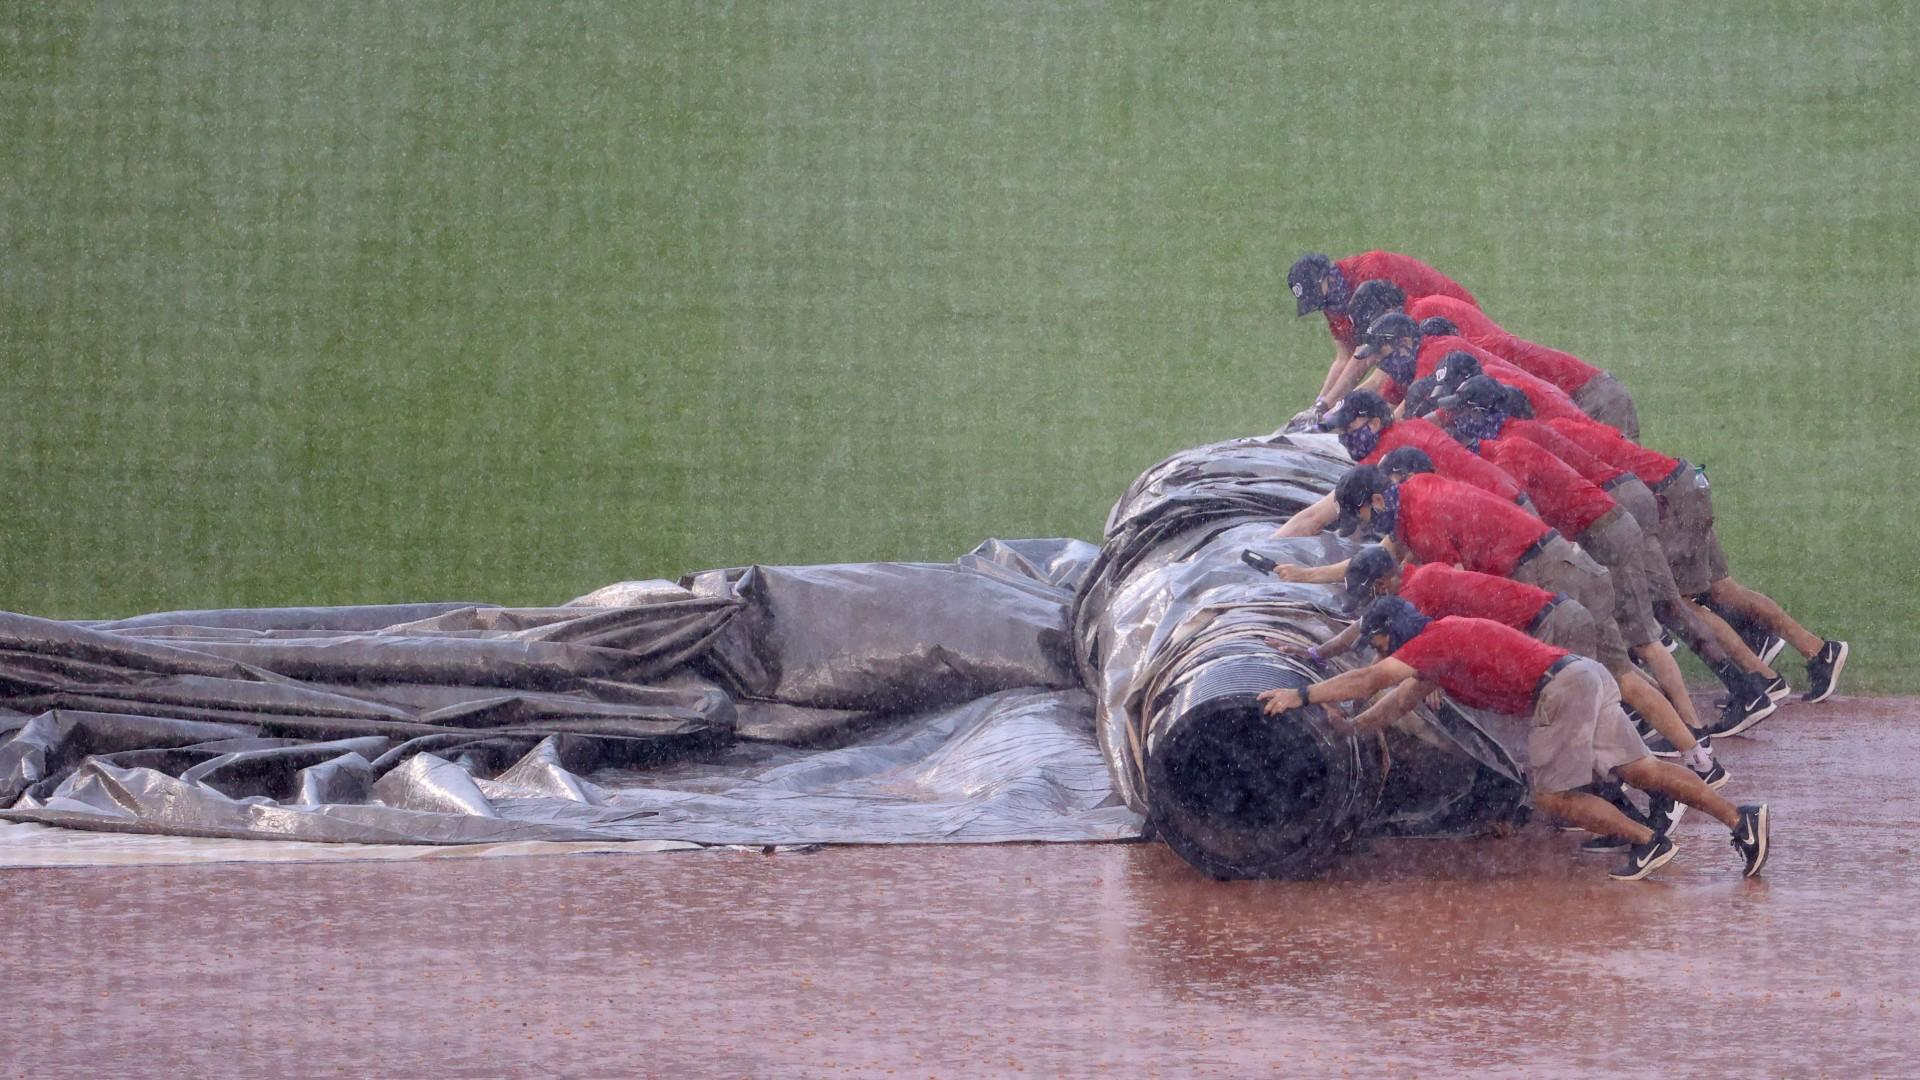 Rule 7.02, malfunctioning tarps and sweeps: Orioles-Nationals game on Sunday postponed